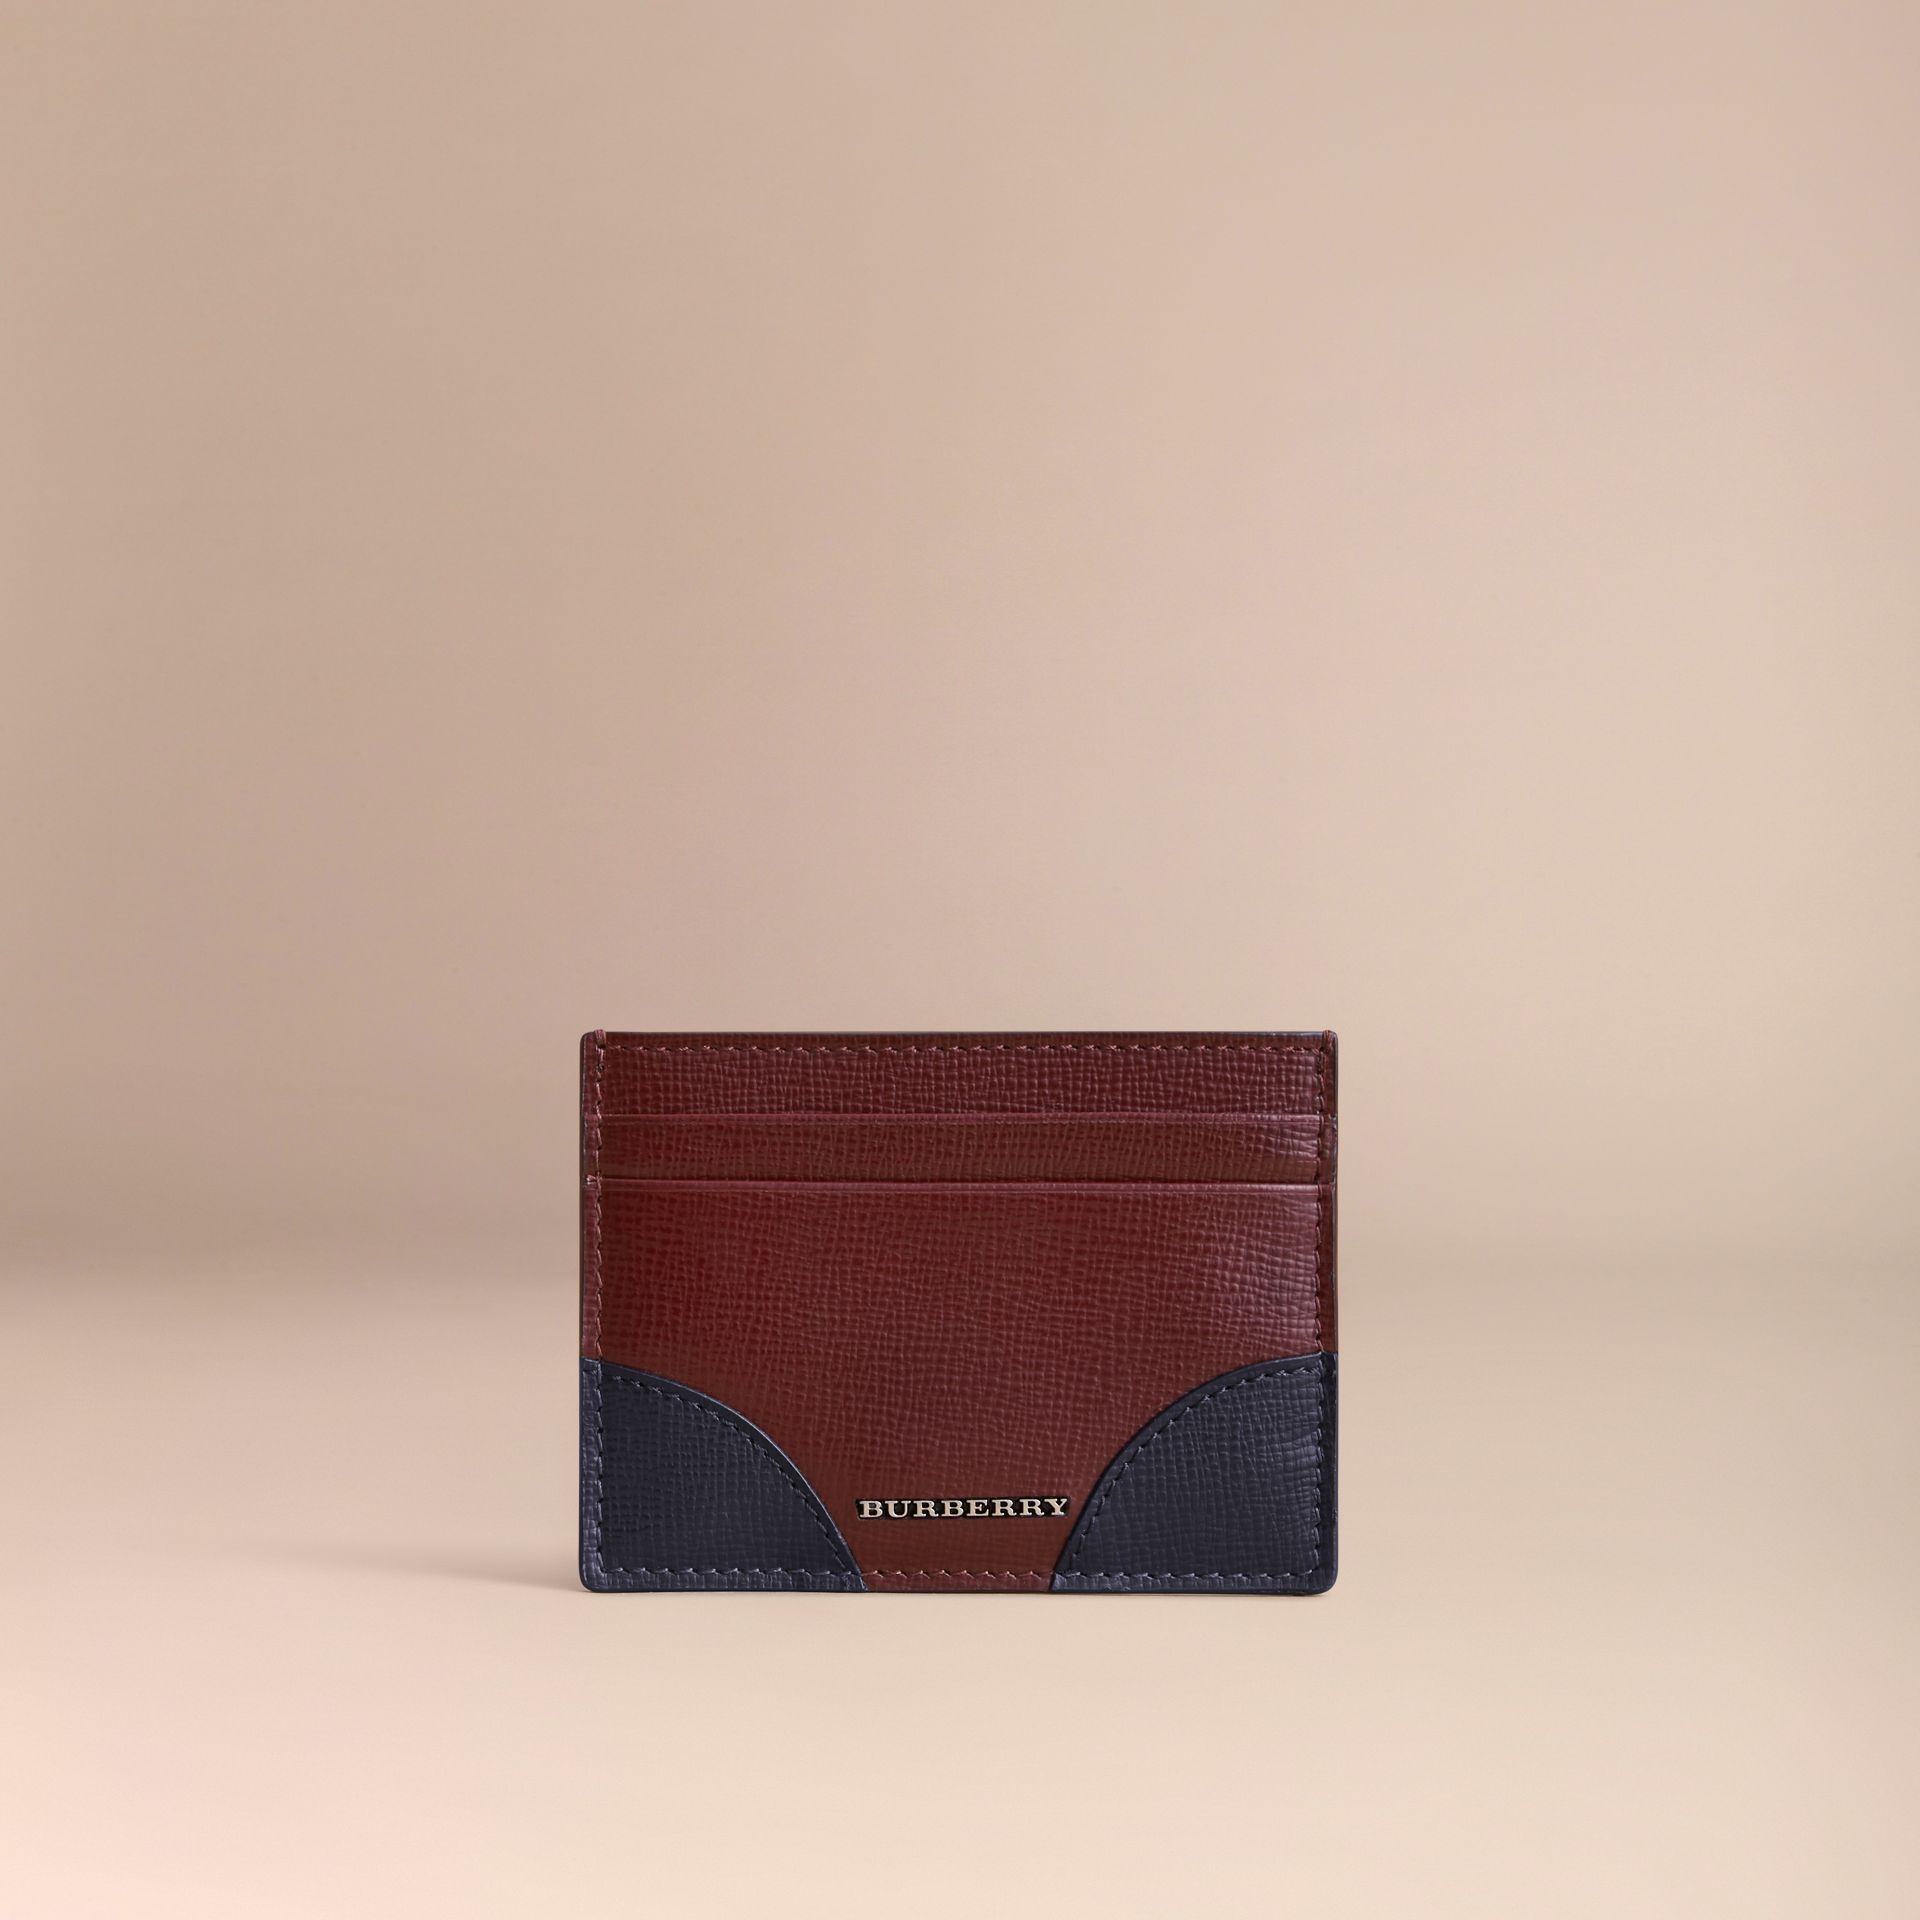 Contrast Corner London Leather Card Case in Burgundy Red - gallery image 6